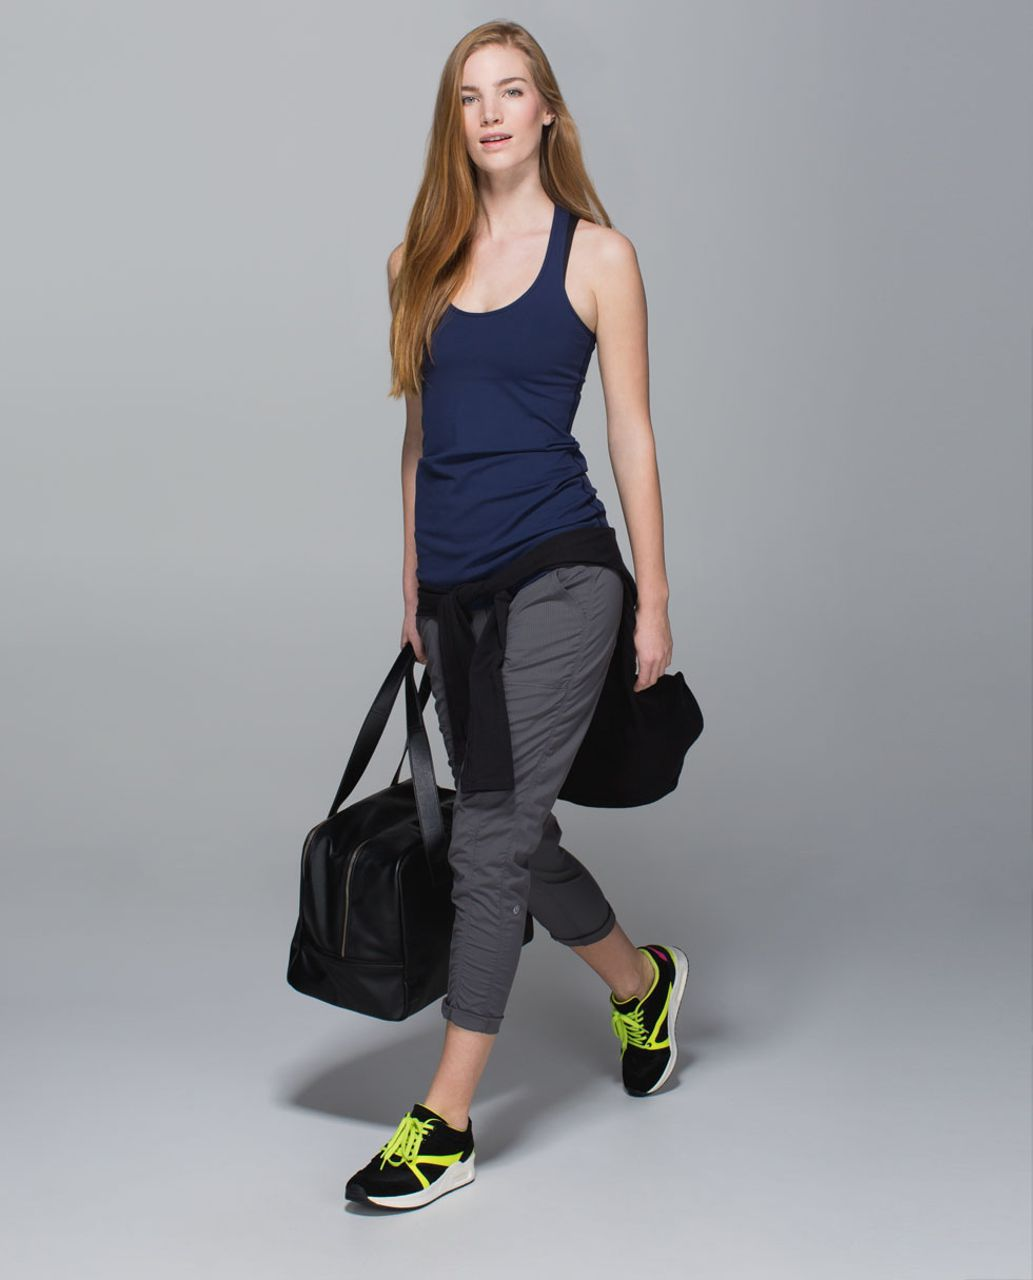 Lululemon Cool Racerback - Deep Navy